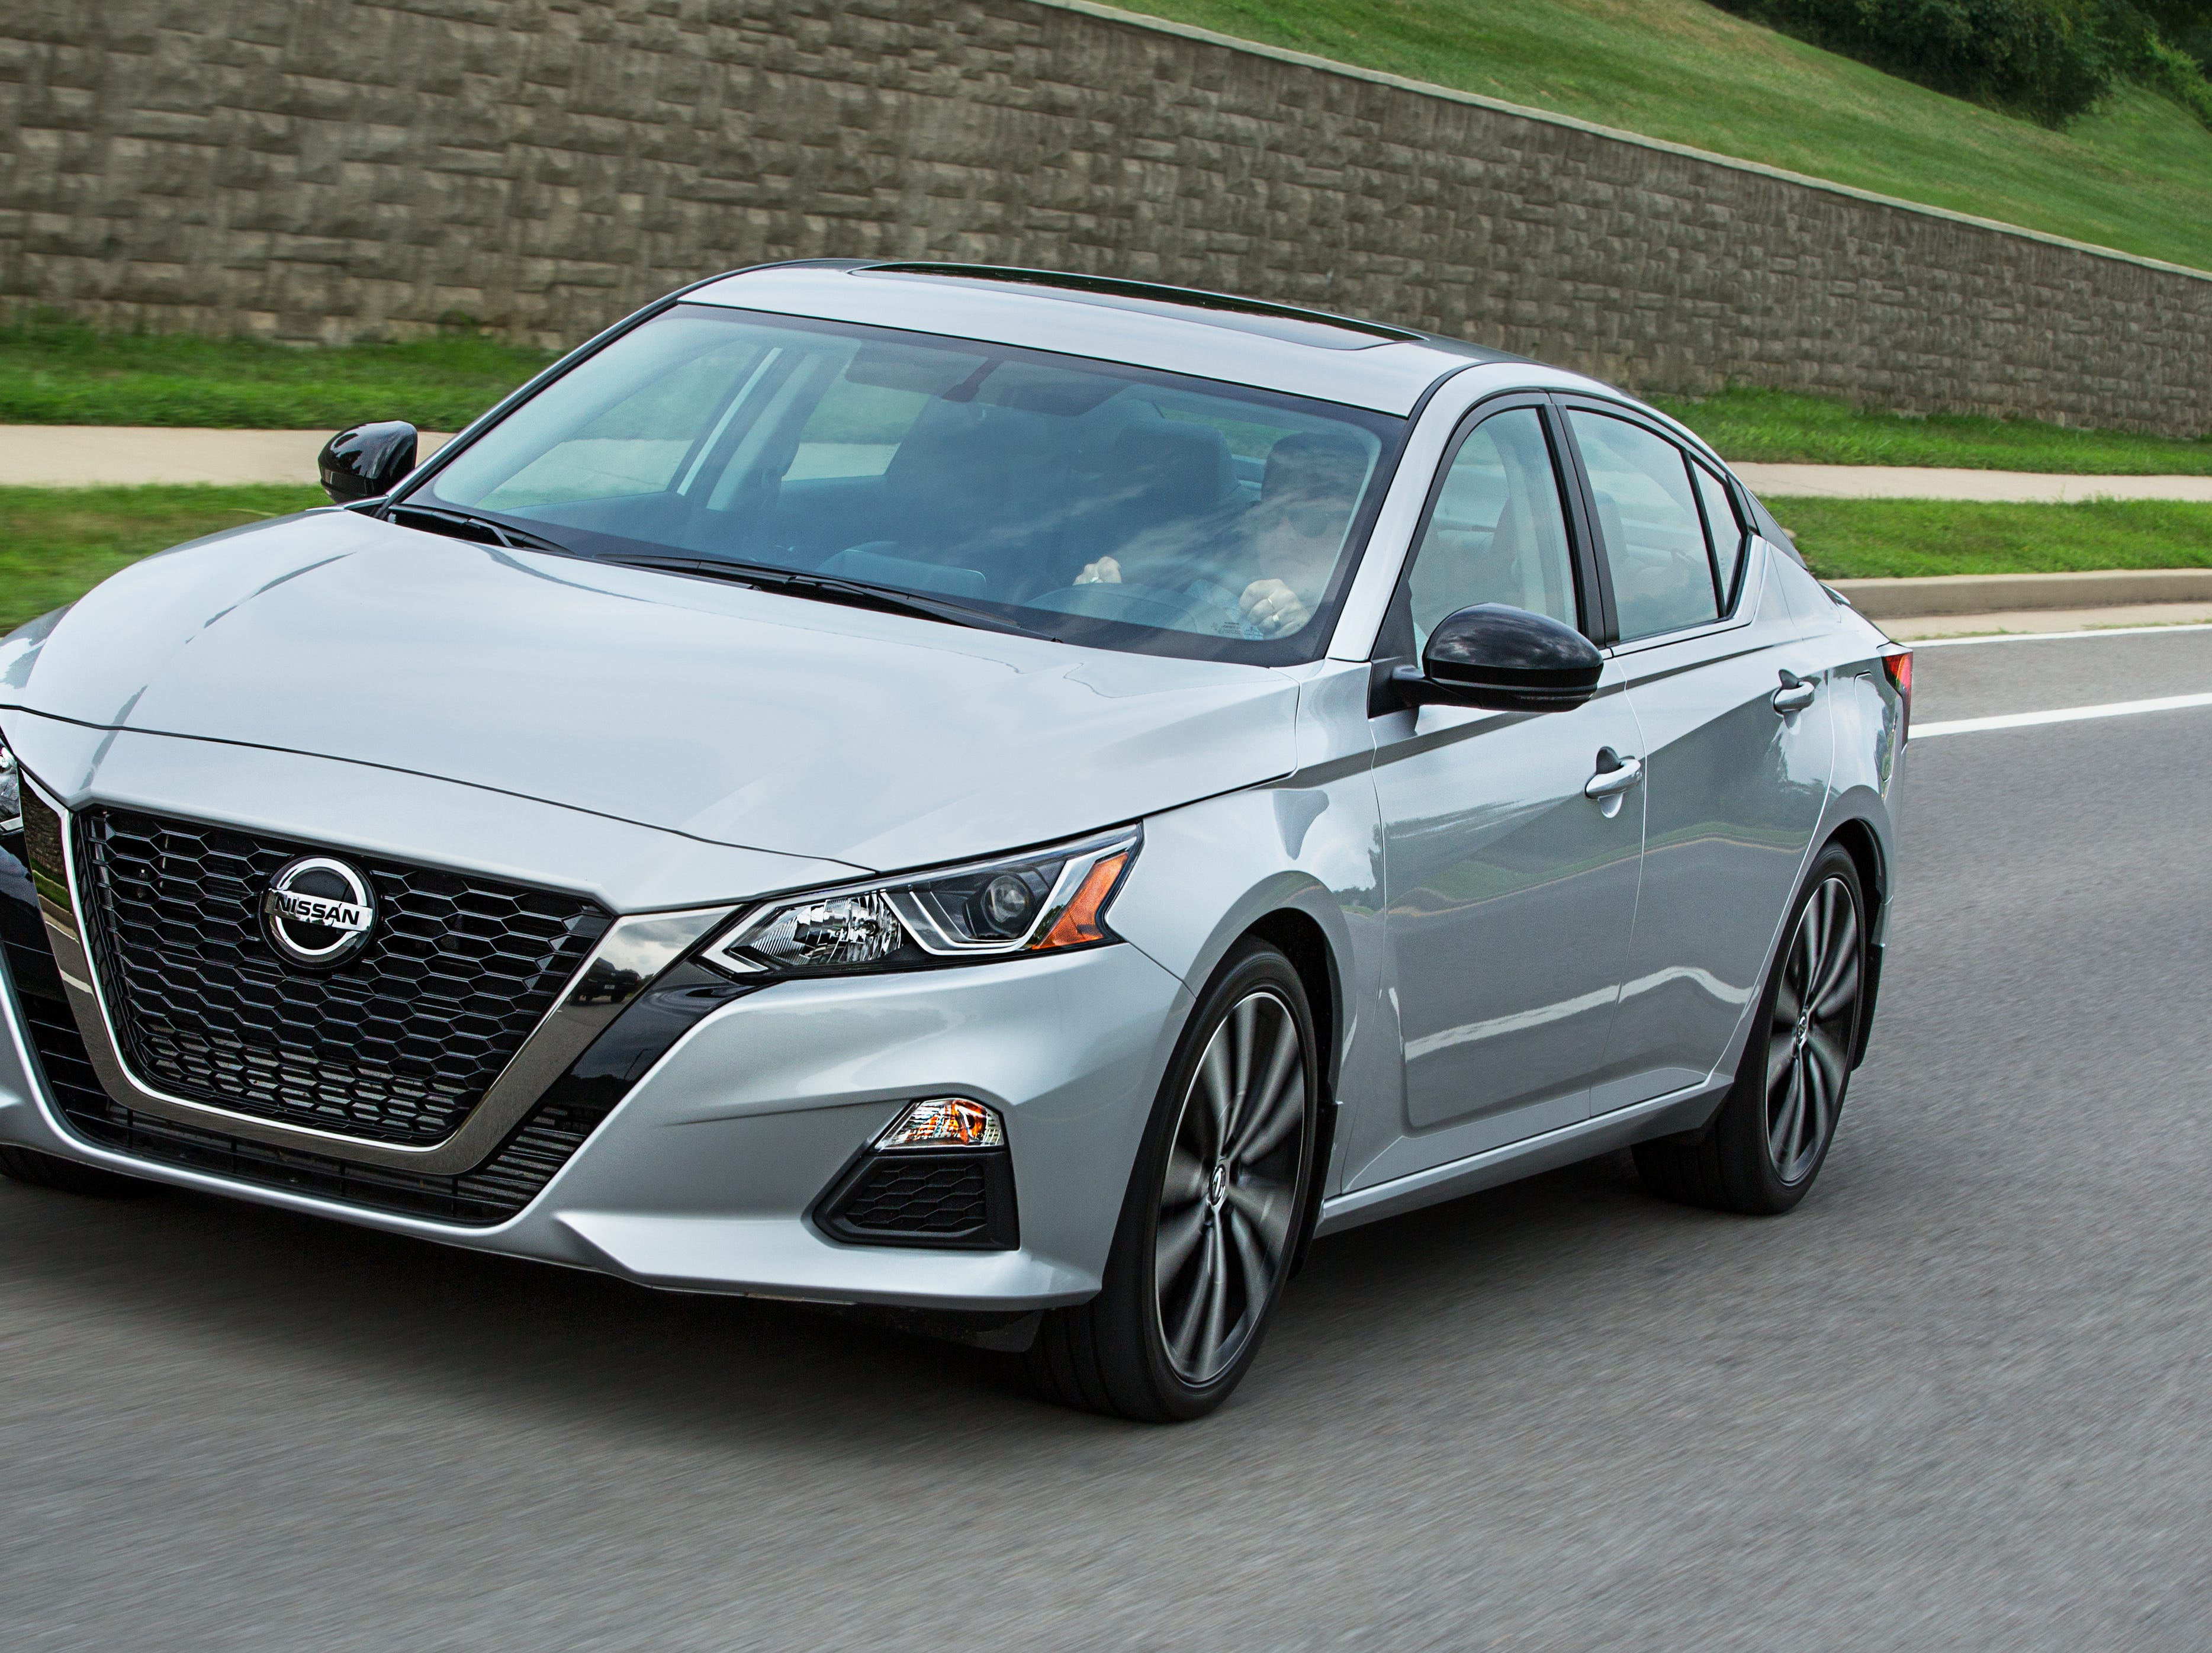 Nissan targets young professionals with Altima